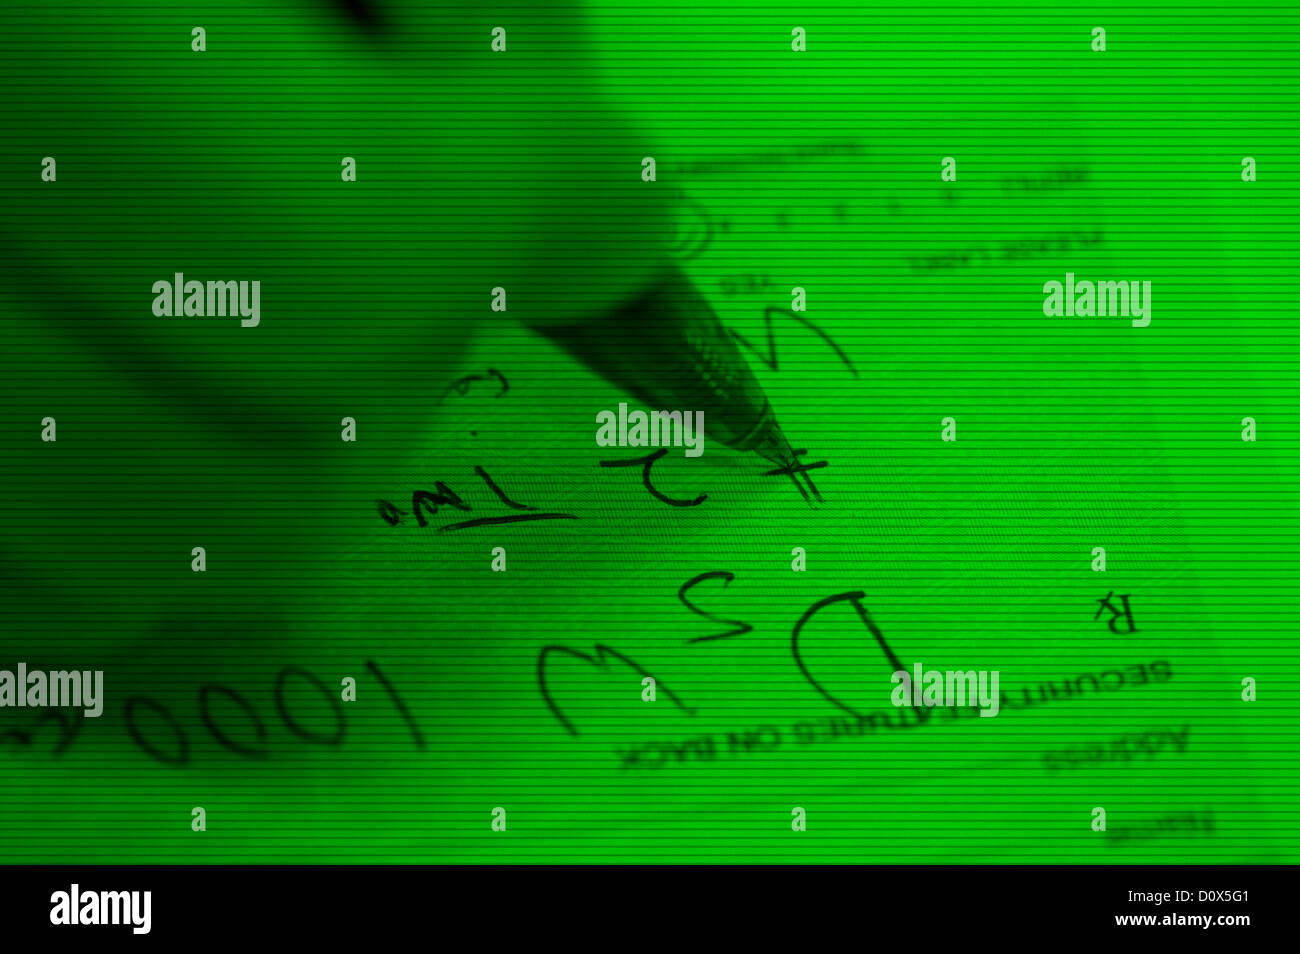 night vision image closeup hand writing illegal drug prescription - Stock Image